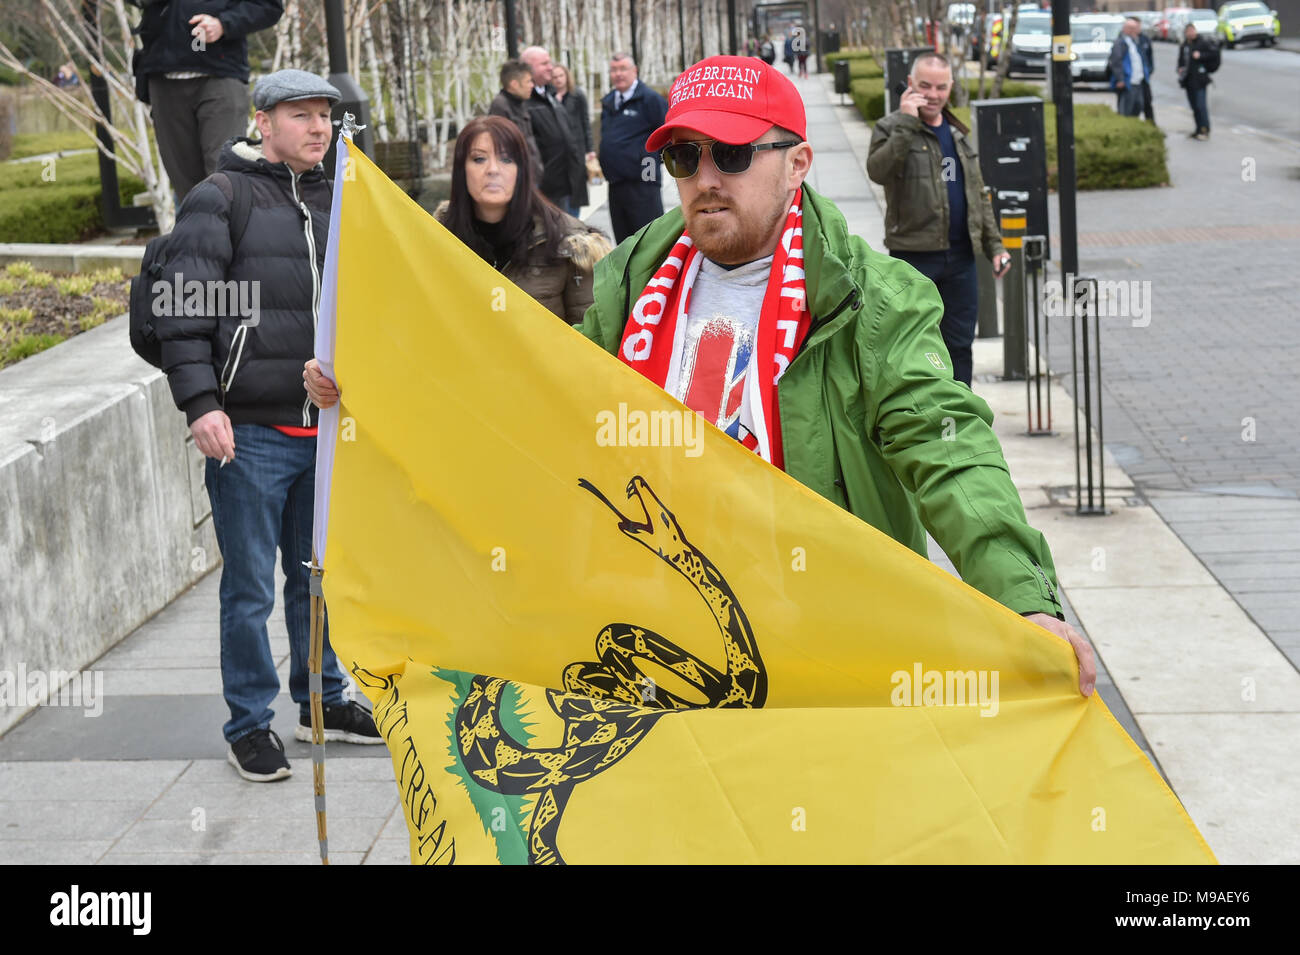 Birmingham, United Kingdom. 24 March 2018. People have gathered for the 'Football Lads Alliance' (FLA) demonstration in Birmingham. There were speeches from John Mieghan, Anne Marie Waters, Luke Nash-Jones and Aline Moraes. After a short march the group dispersed in Edgbaston St. Pictured: Luke Nash-Jones  Credit: Peter Manning/Alamy Live News - Stock Image